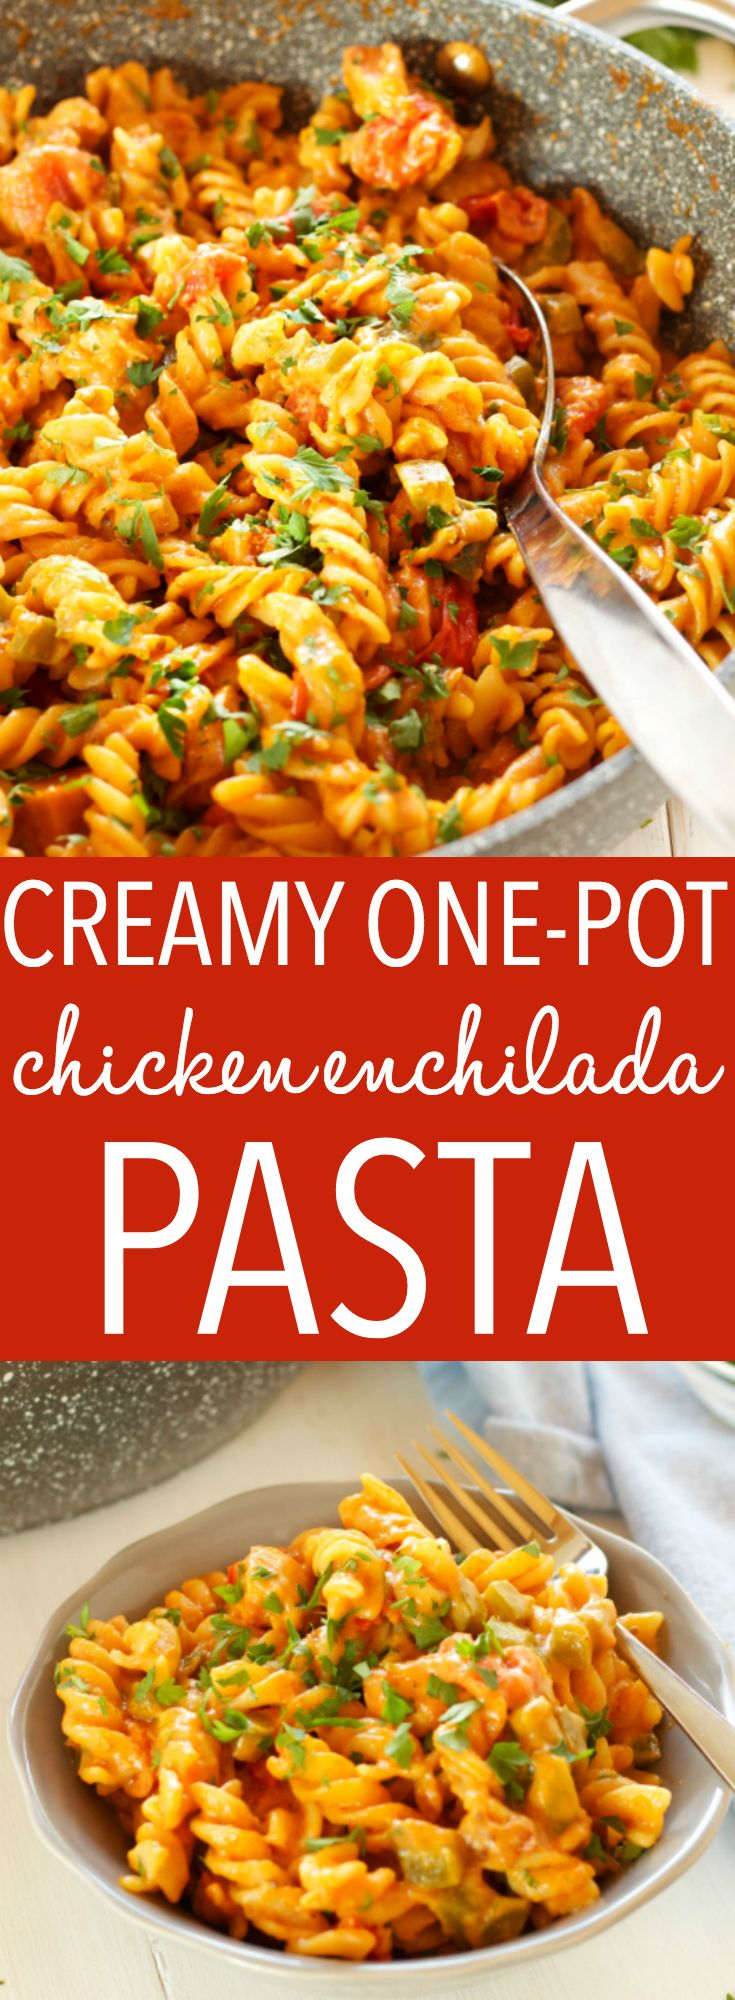 This Creamy One-Pot Chicken Enchilada Pasta is the perfect easy weeknight family meal made with simple ingredients in 30 minutes or less! Recipe from thebusybaker.ca! #easyfamilymeal #familymeal #weeknightmeal #onepotpasta #enchiladapasta via @busybakerblog